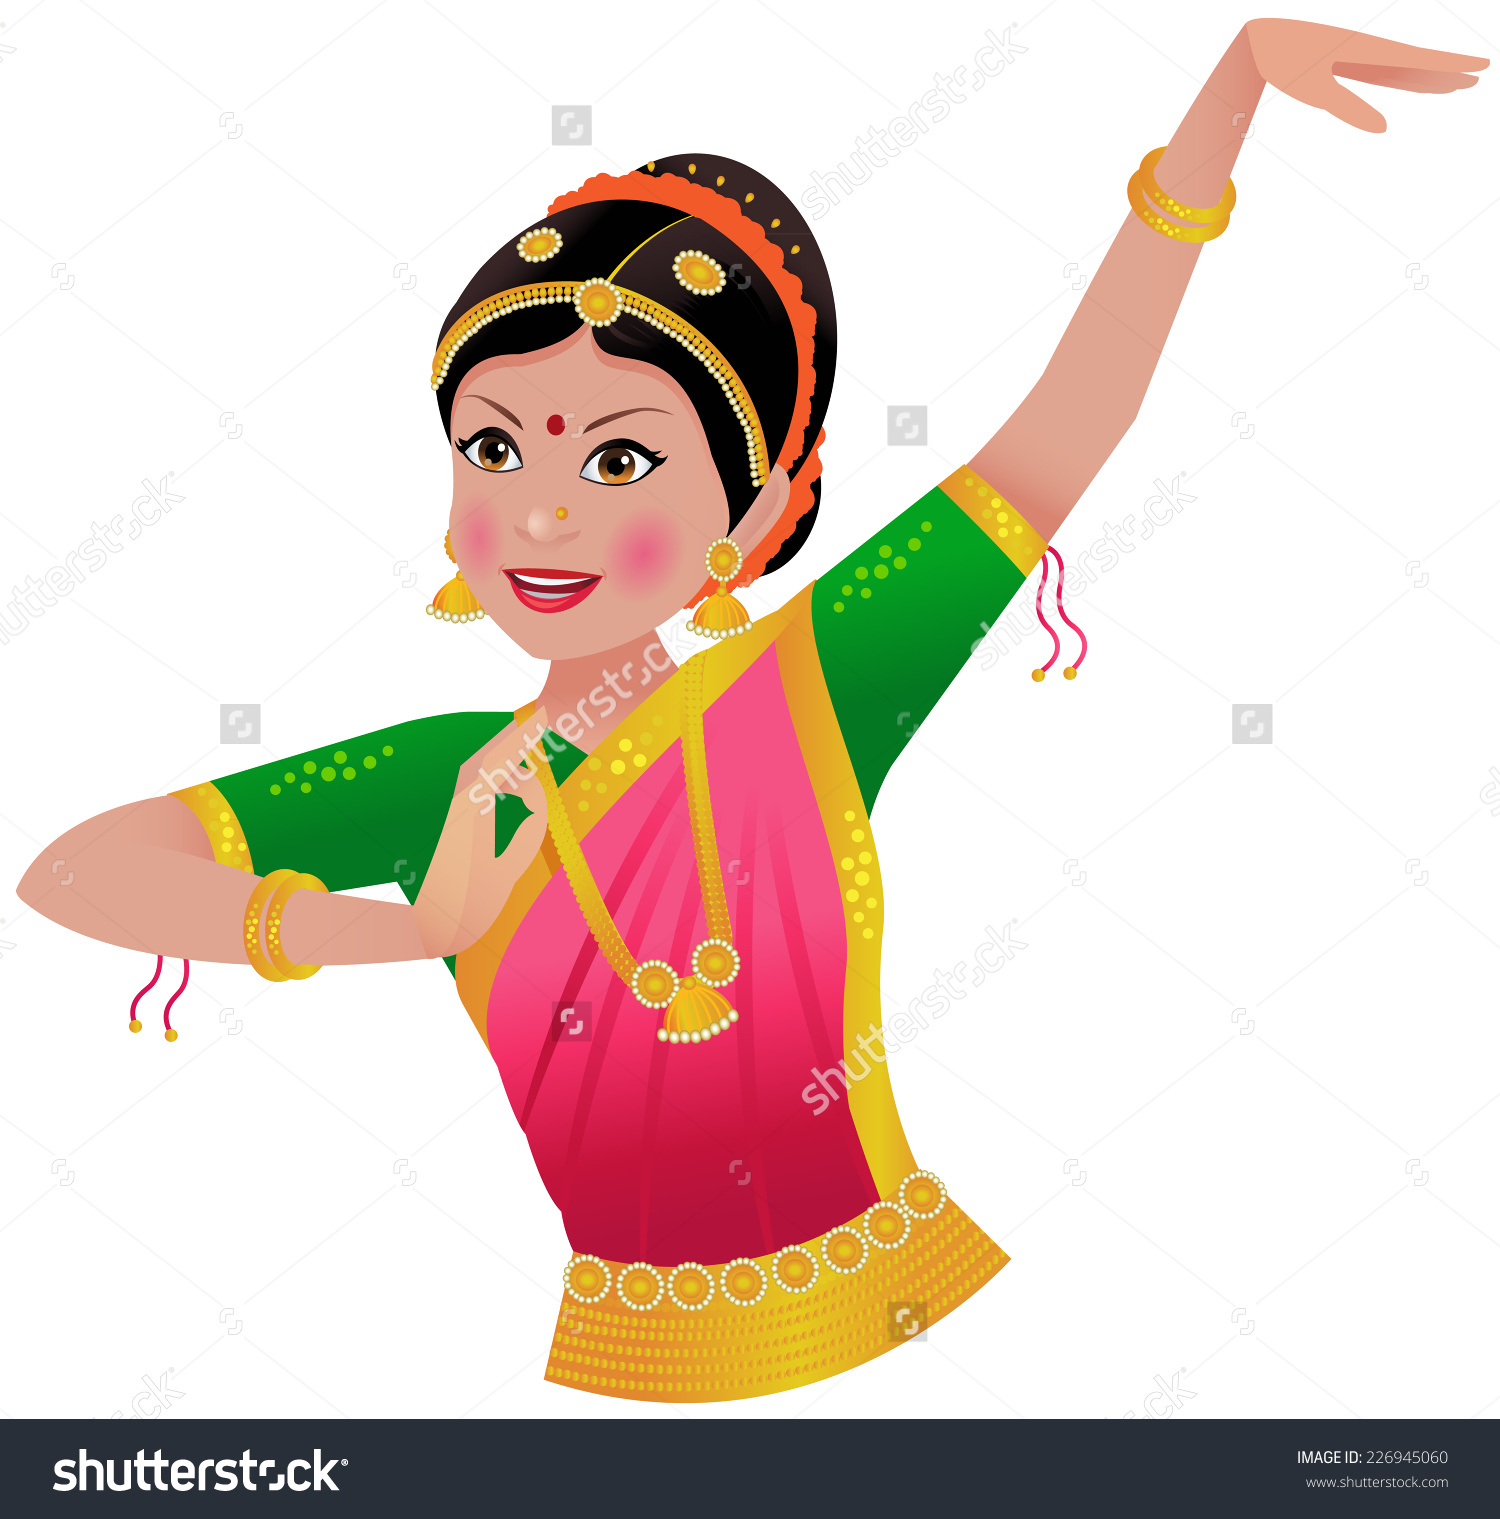 Indian classical dance bharatanatyam clipart 8 » Clipart Station.